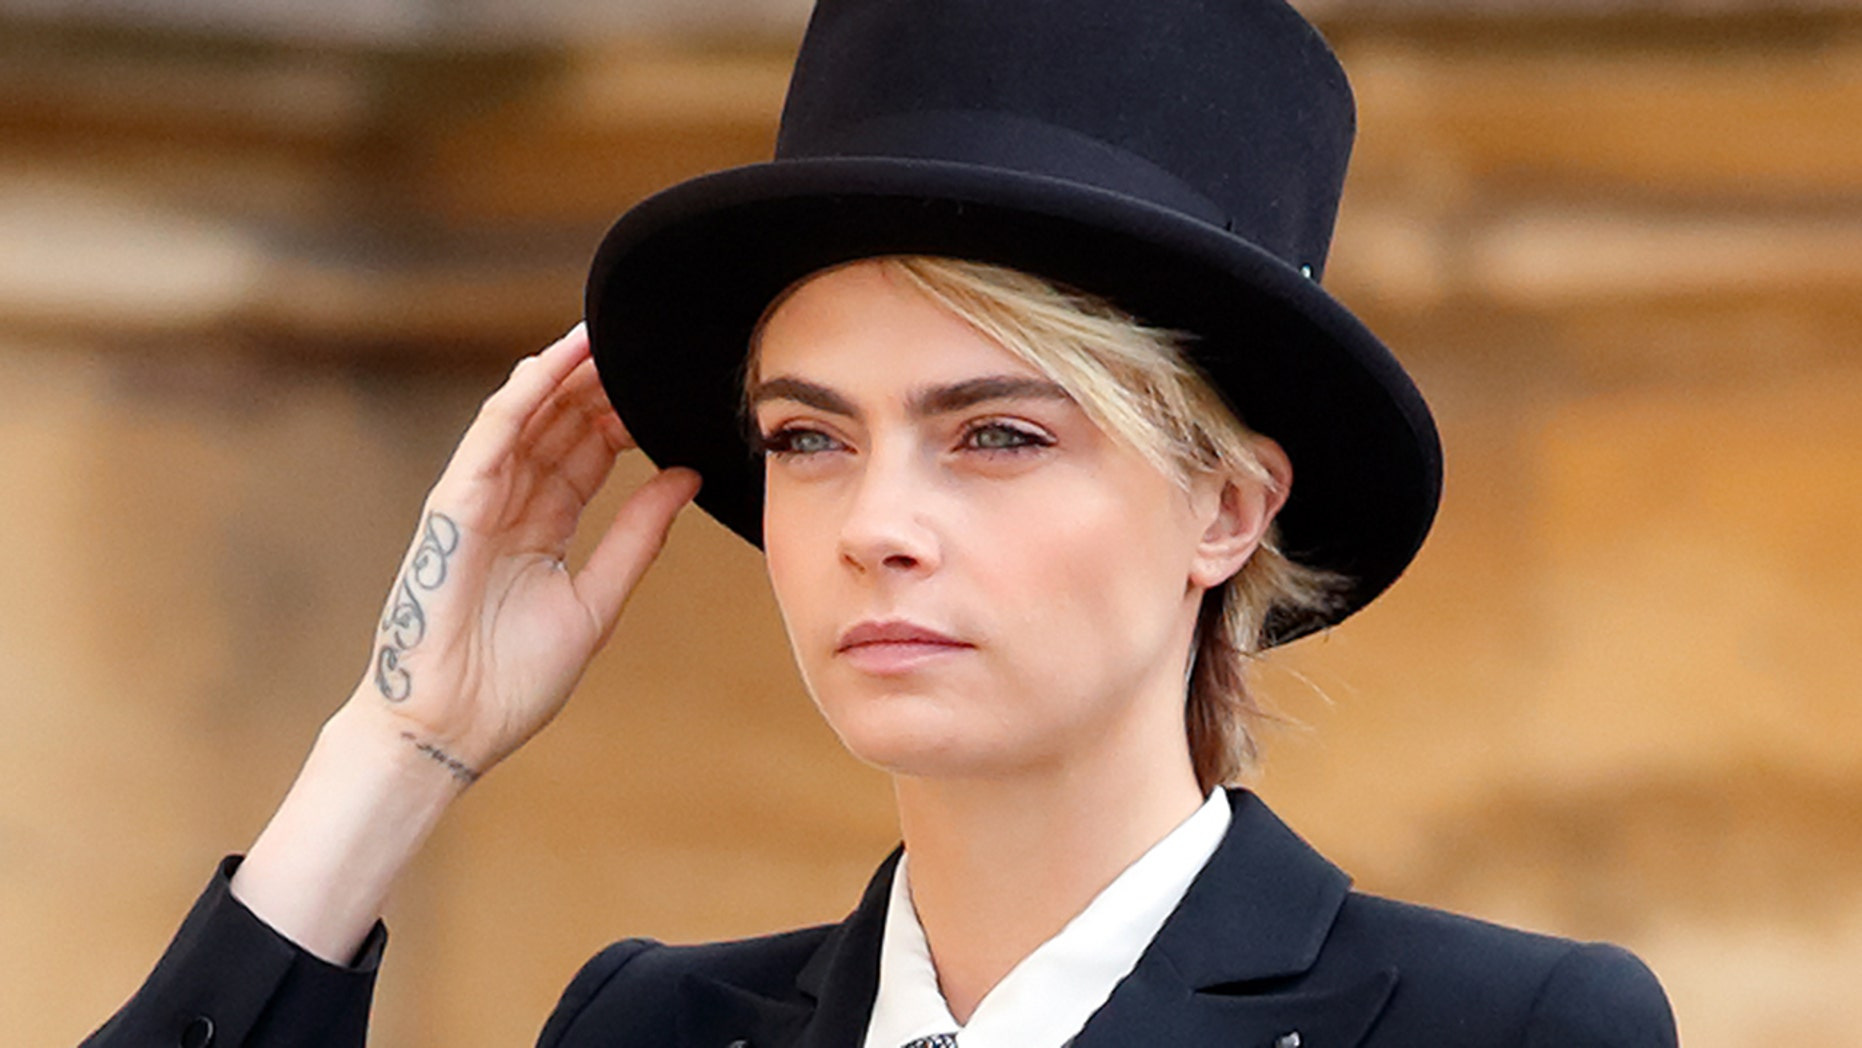 Cara Delevingne attended Princess Eugenie's royal wedding a suit and top hat.